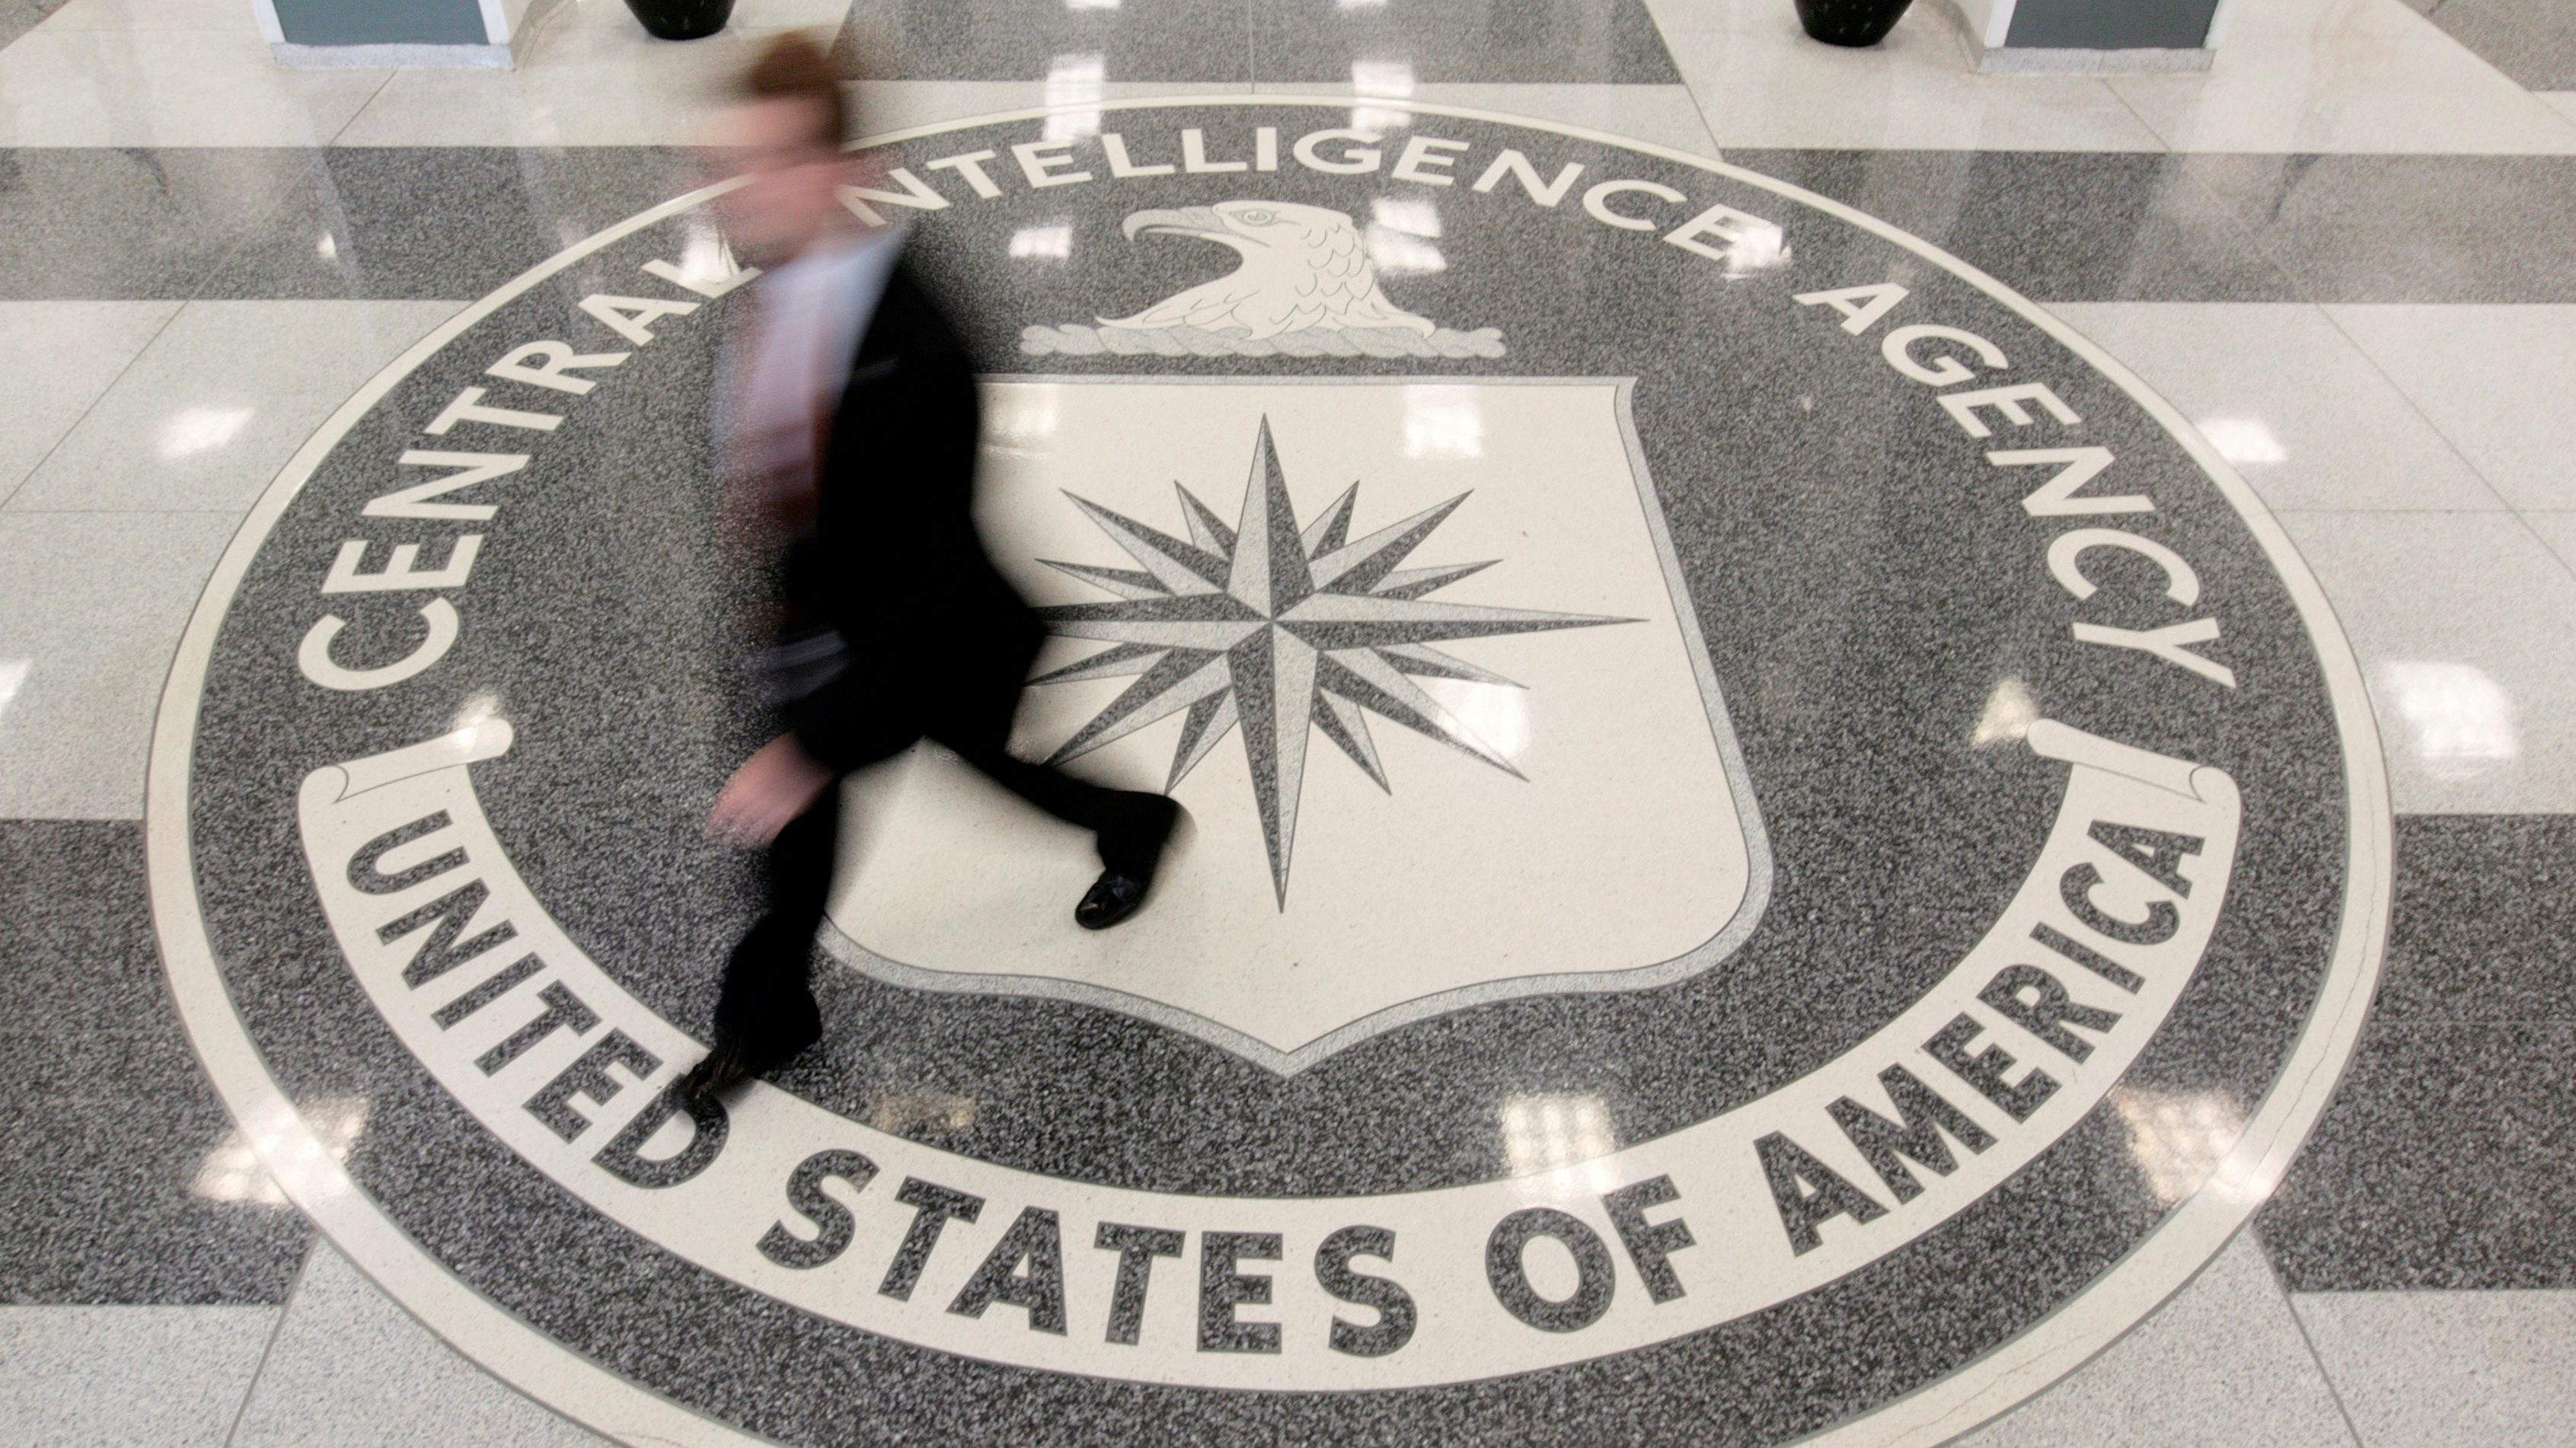 FILE PHOTO - The lobby of the CIA Headquarters Building is pictured in Langley, Virginia, U.S. on August 14, 2008.     REUTERS/Larry Downing/File Photo - RTS11UG8